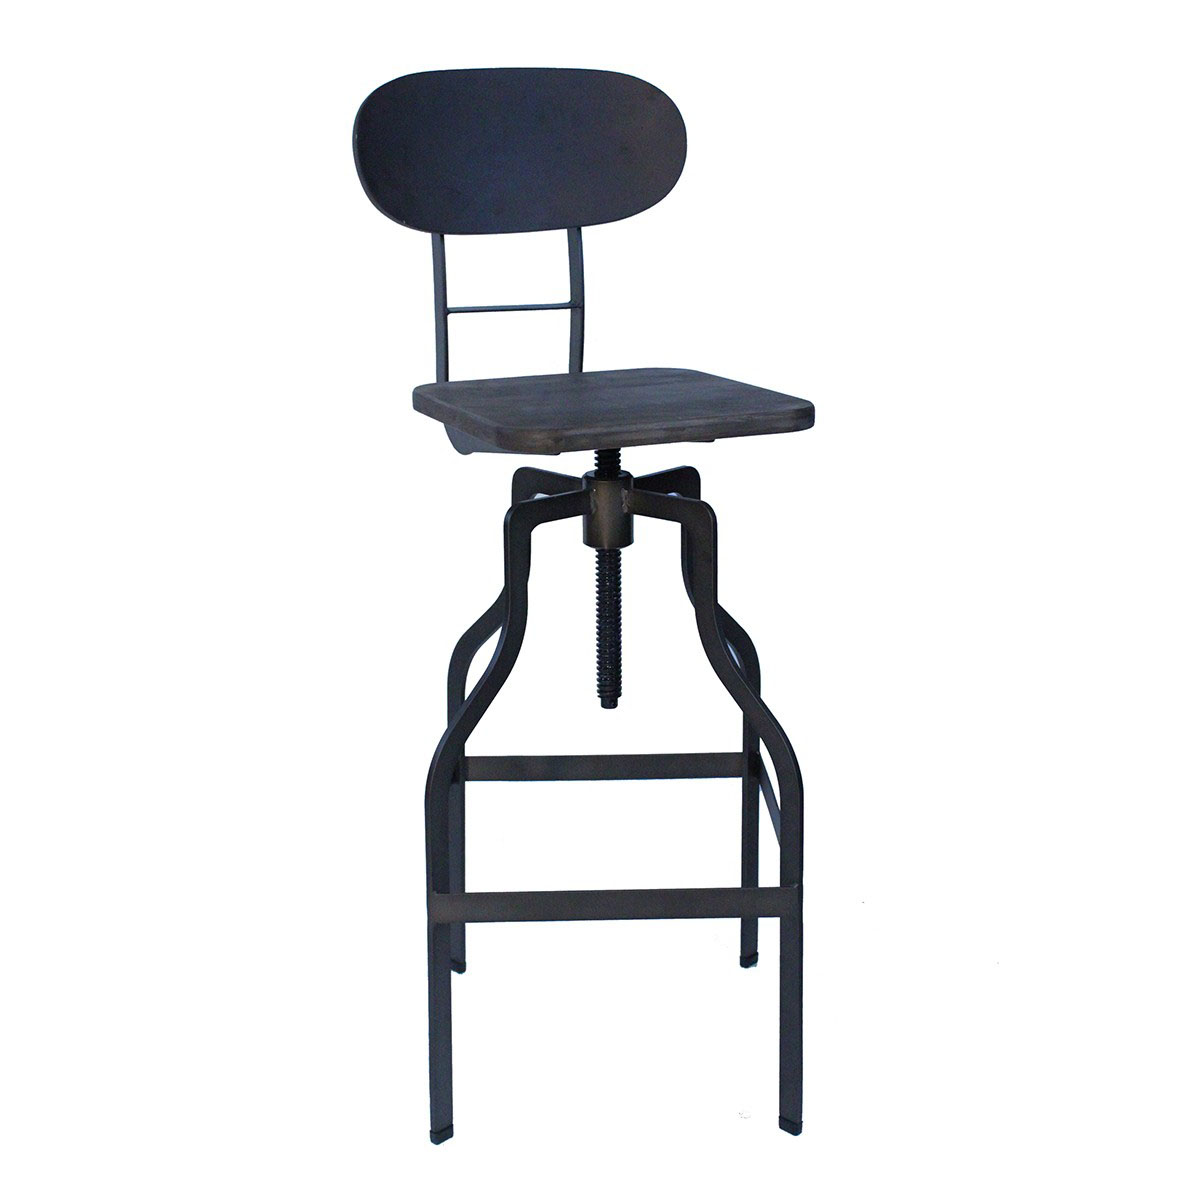 Bolzano Vintage Bar Stool - Black Product Image